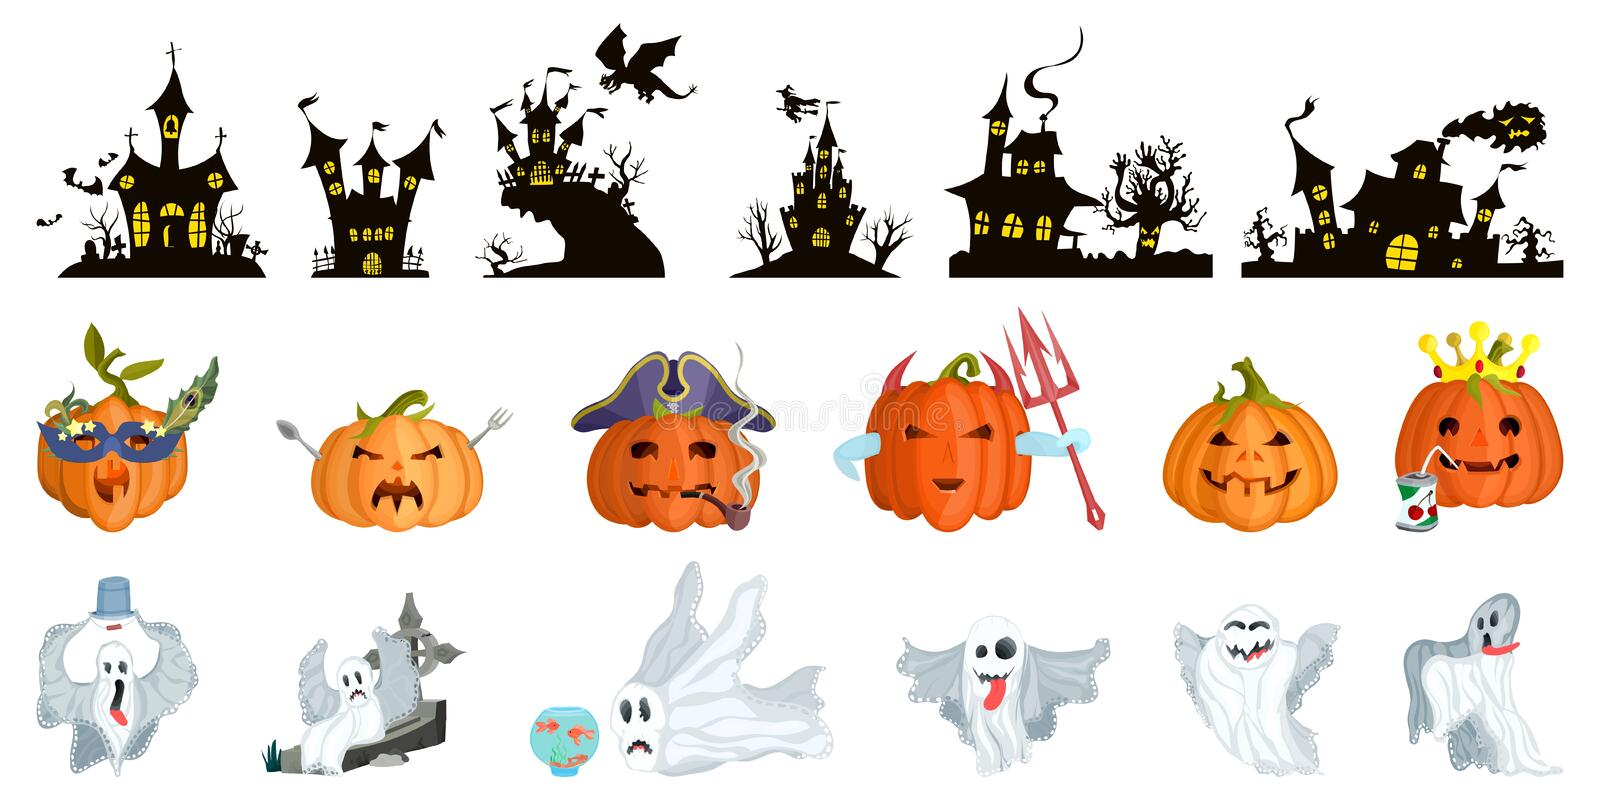 Big selection for halloween. castles and monsters. Ghosts and evil pumpkins royalty free illustration